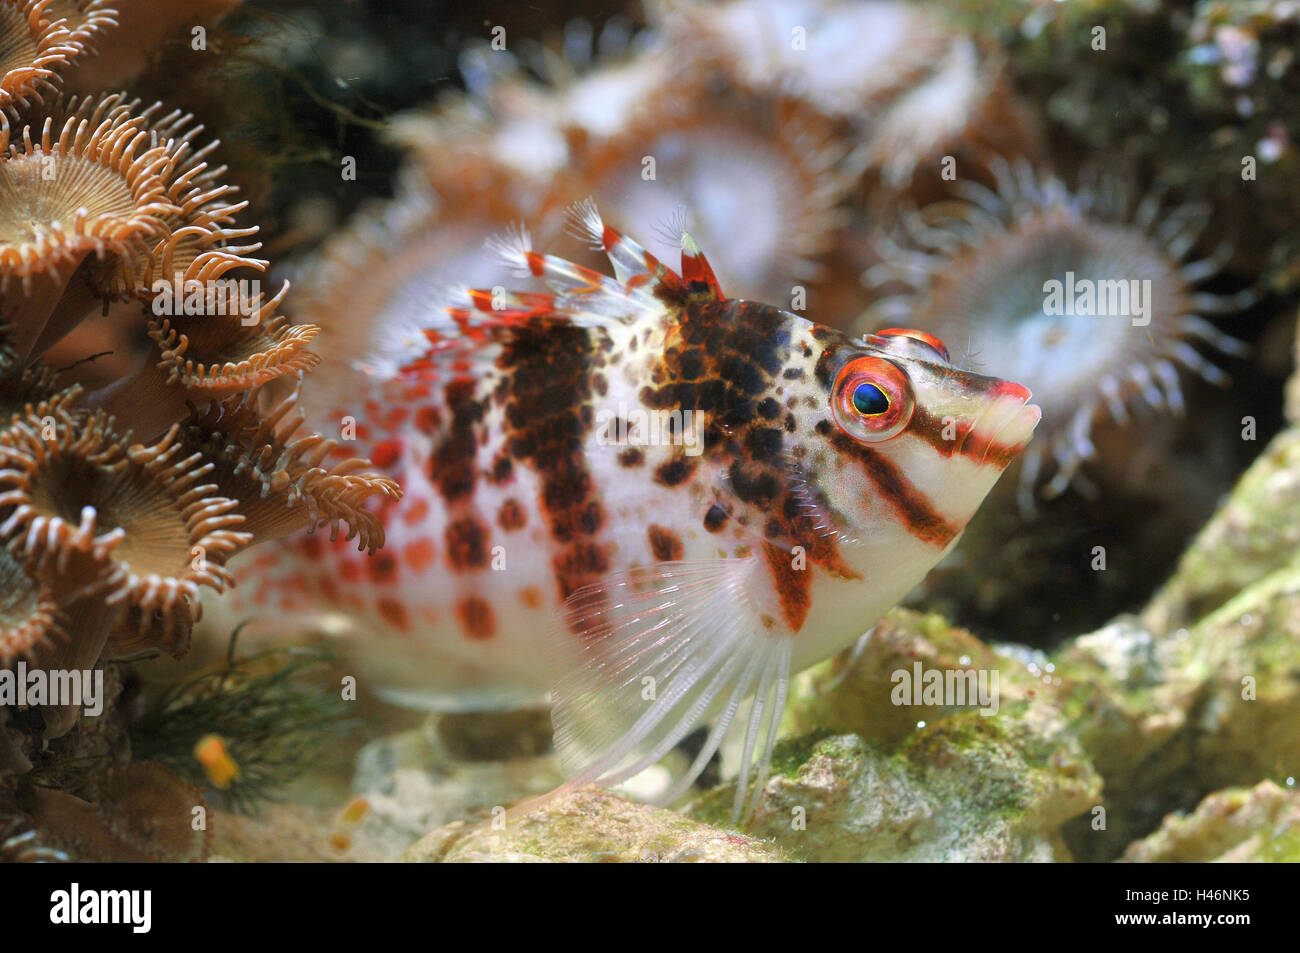 Tropical fish in coral reef, sea anemones, - Stock Image